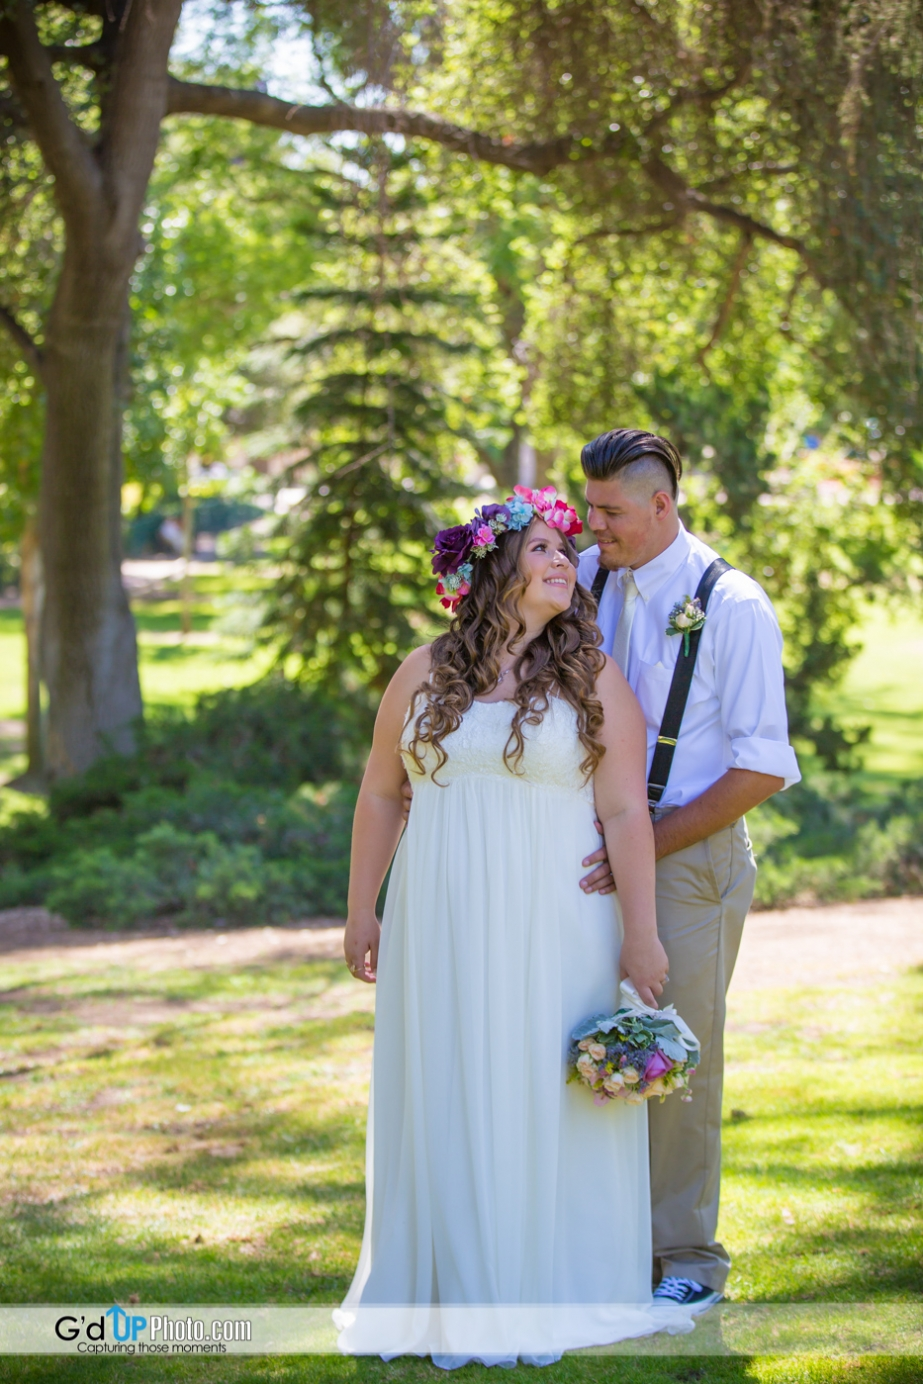 Krista and Jonathan's Penn Park Wedding